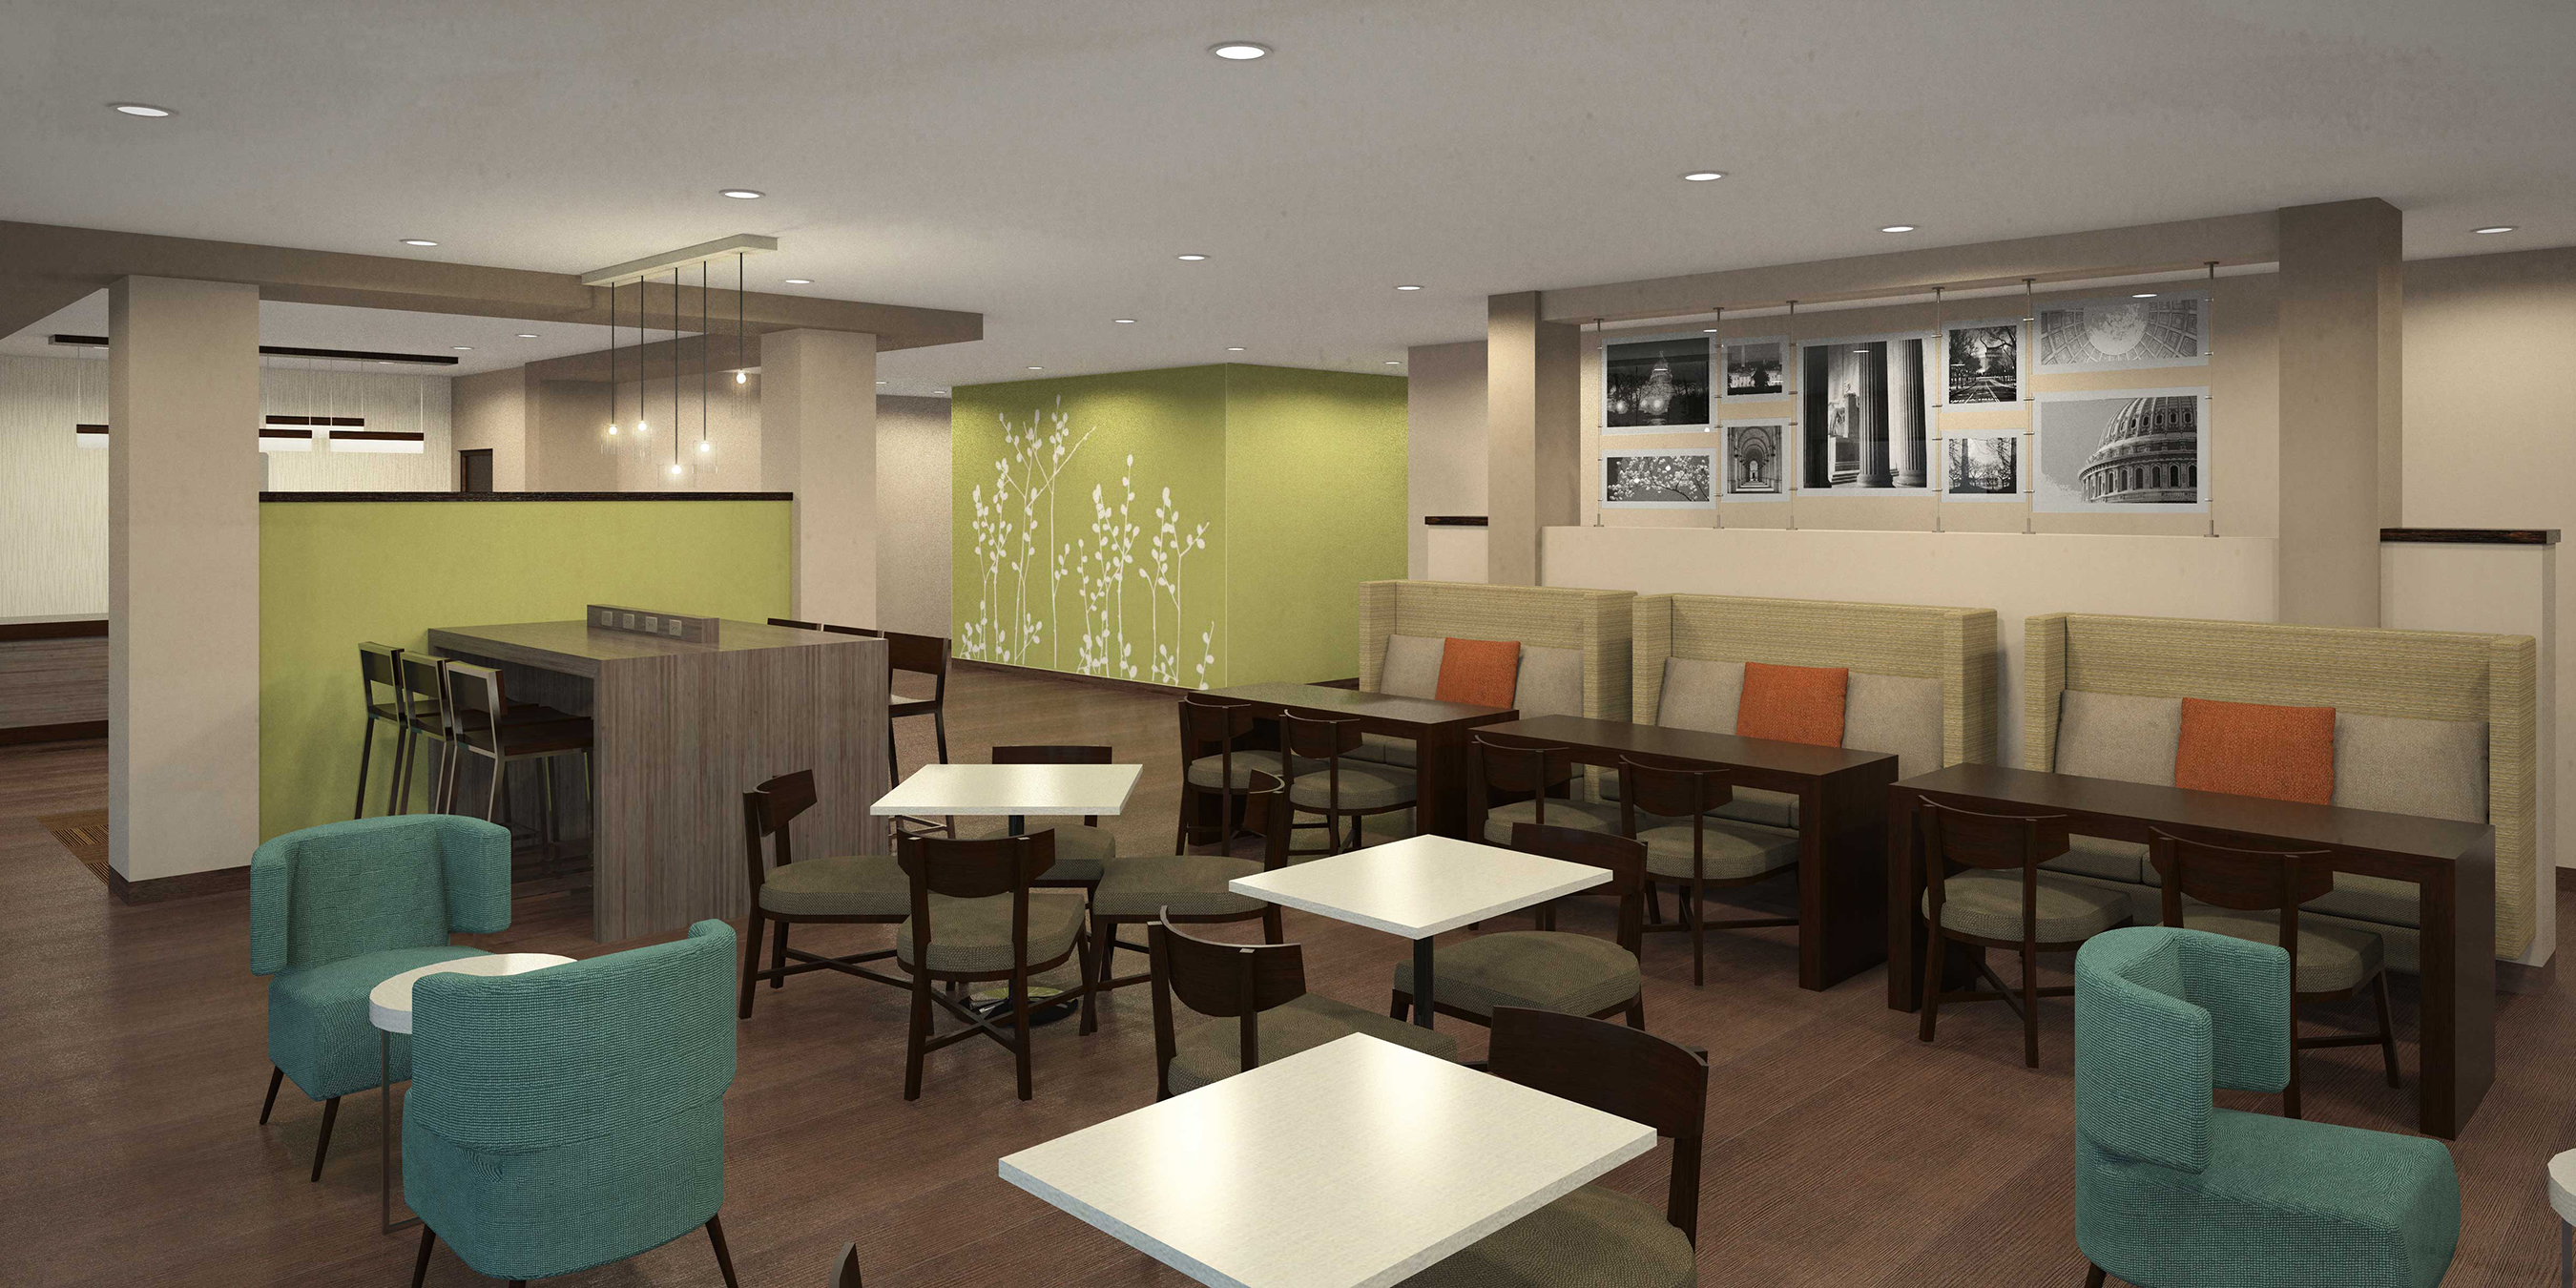 Sleep Inn lobbies have a communal table with built-in charging capabilities along with semi-private banquettes.